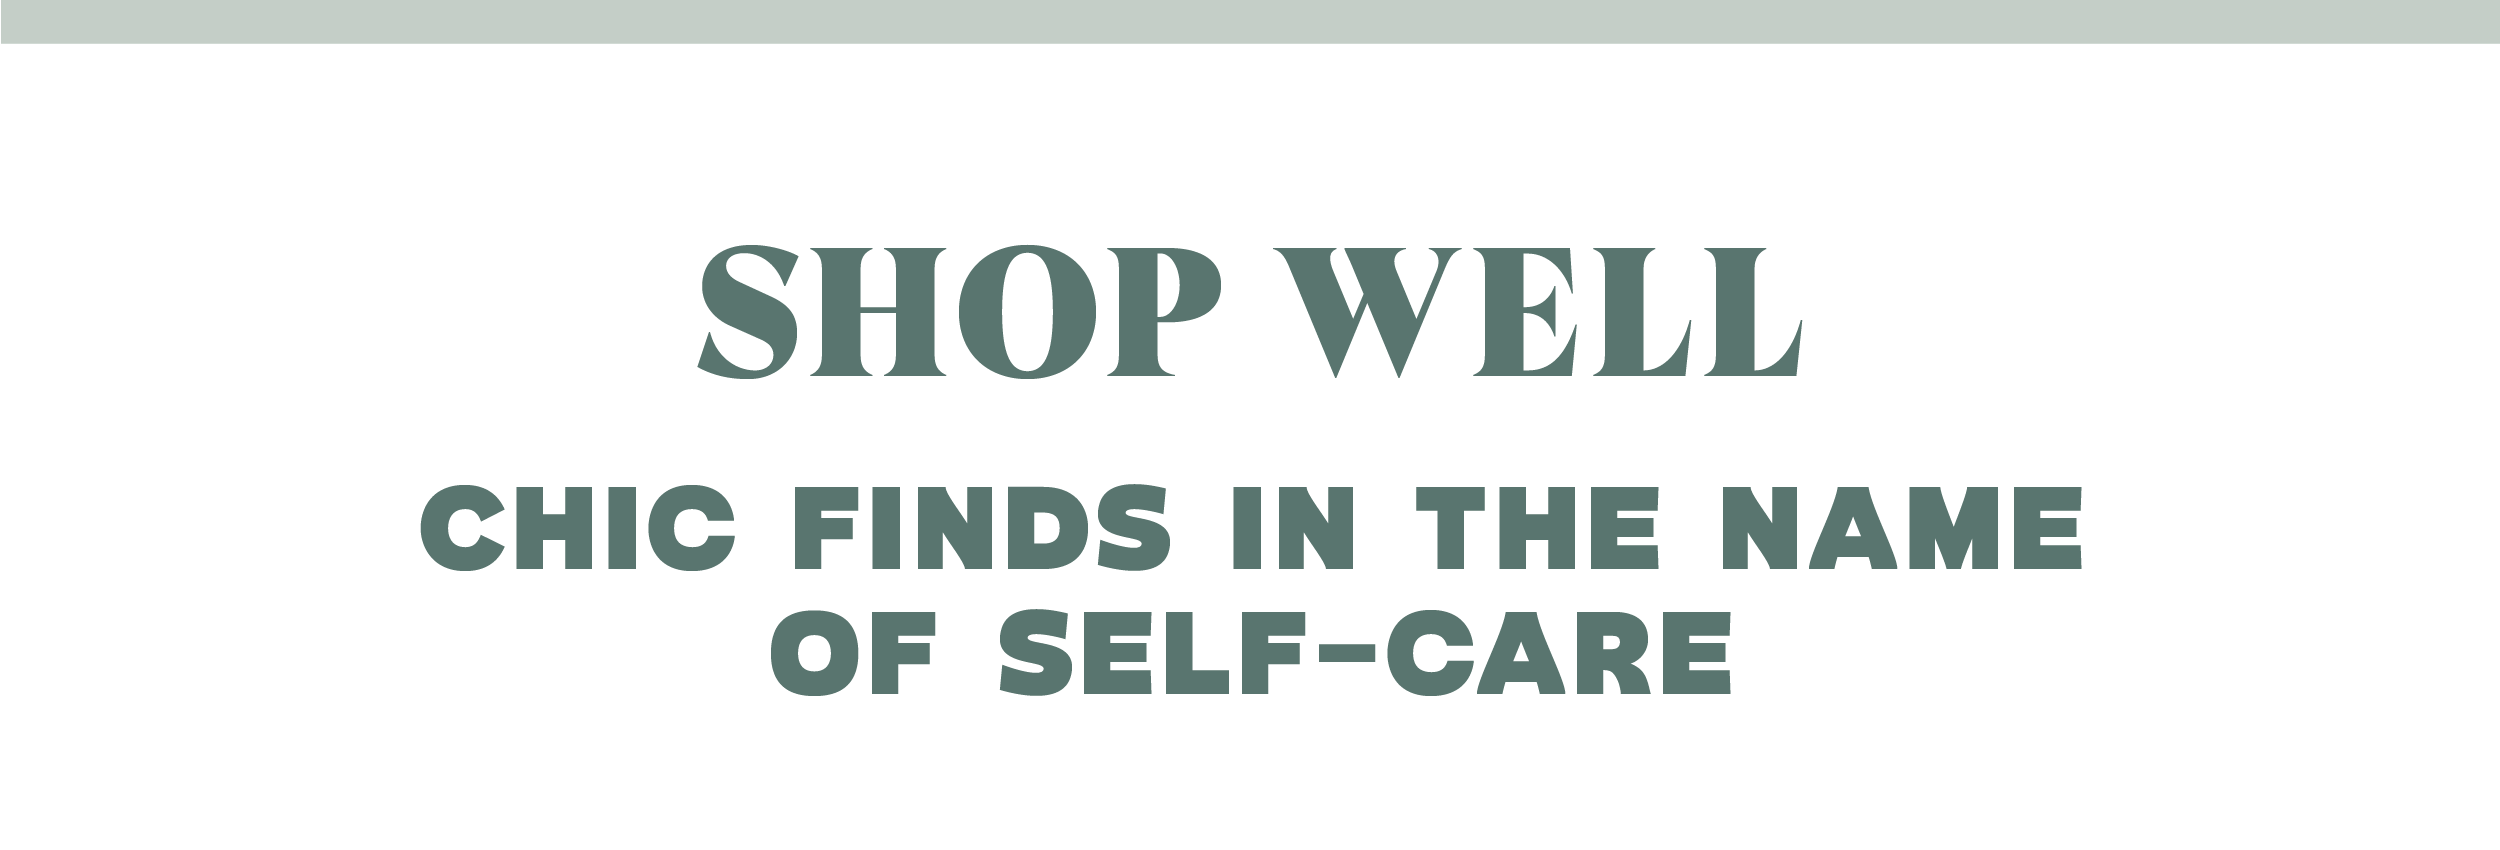 shopwell.png